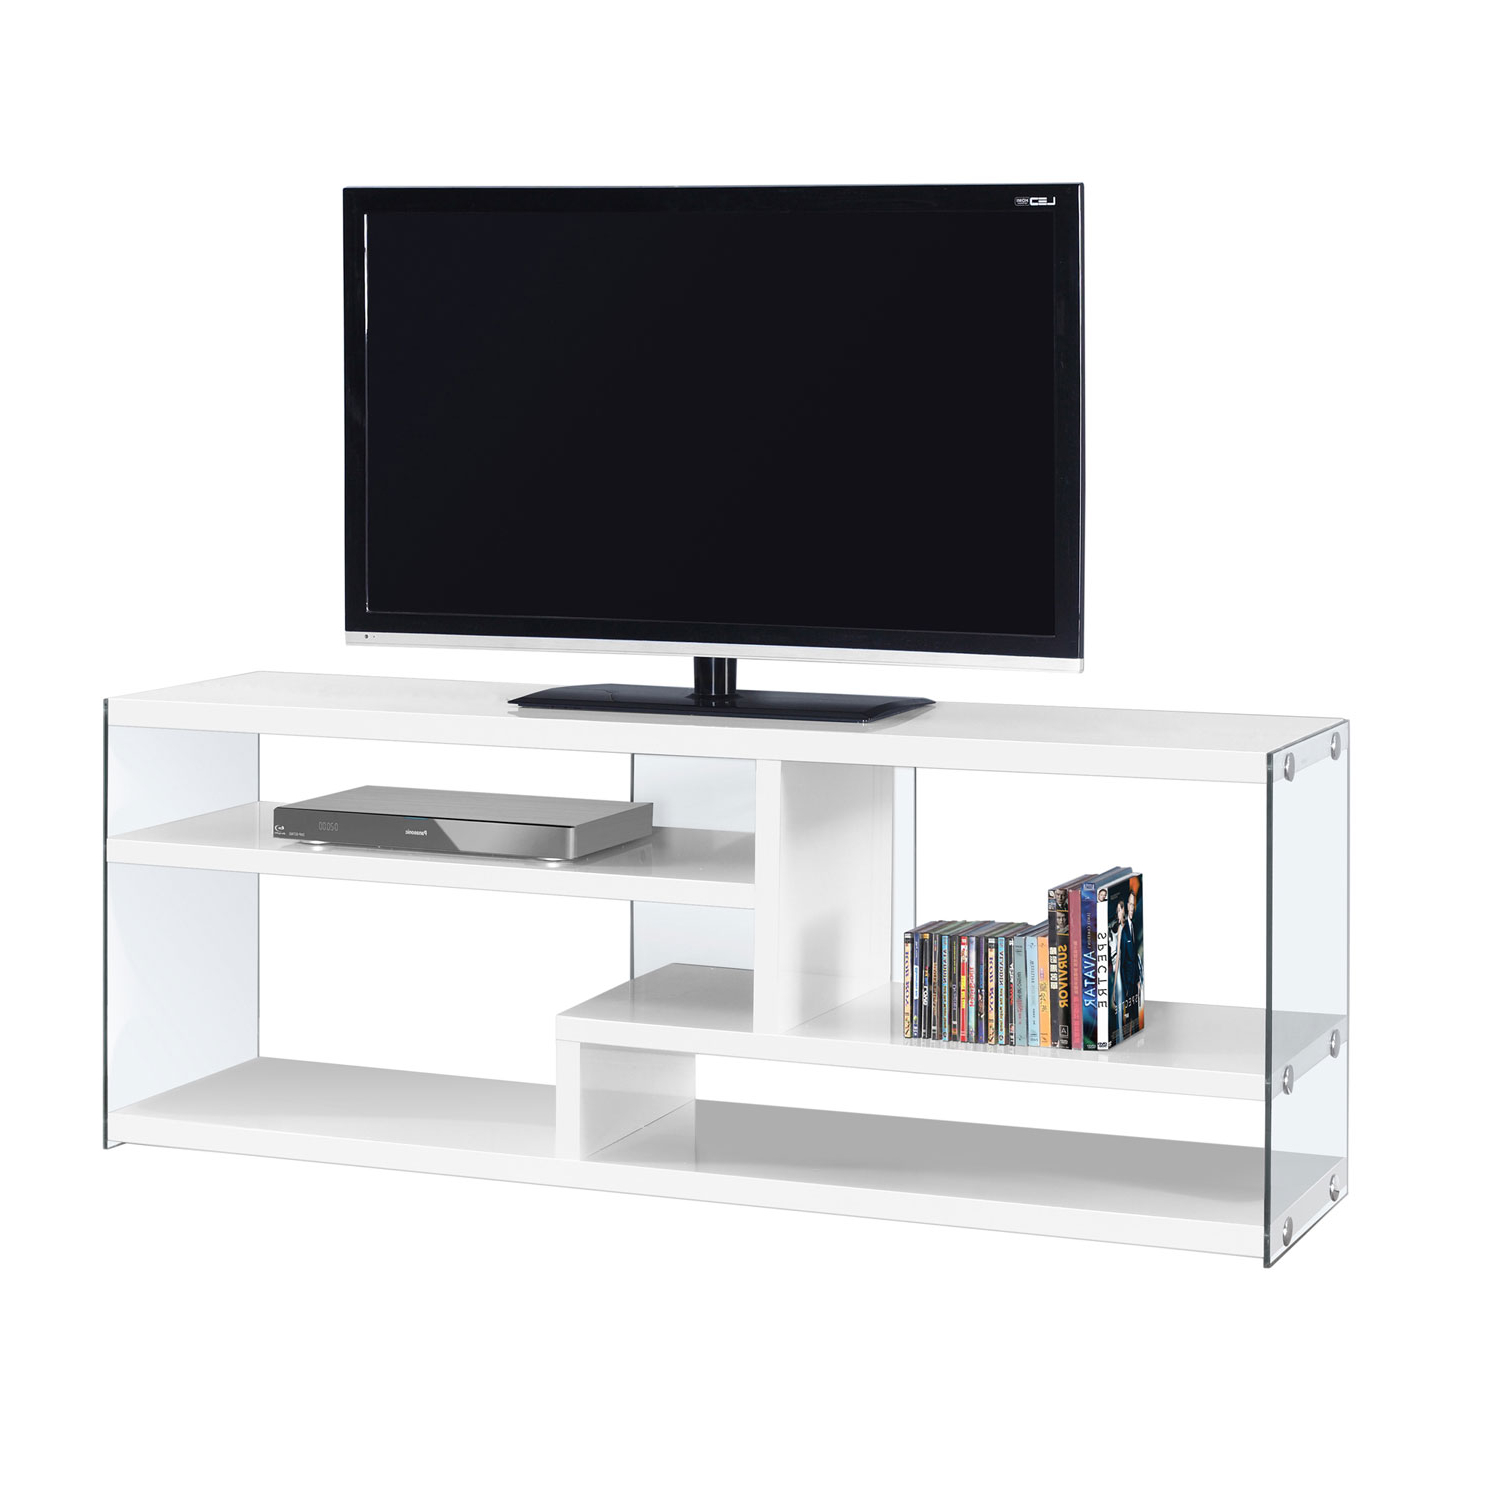 Hawthorne Ave Tv Stand 60L / Glossy White With Tempered Glass I 2690 With Noah 75 Inch Tv Stands (Gallery 8 of 20)